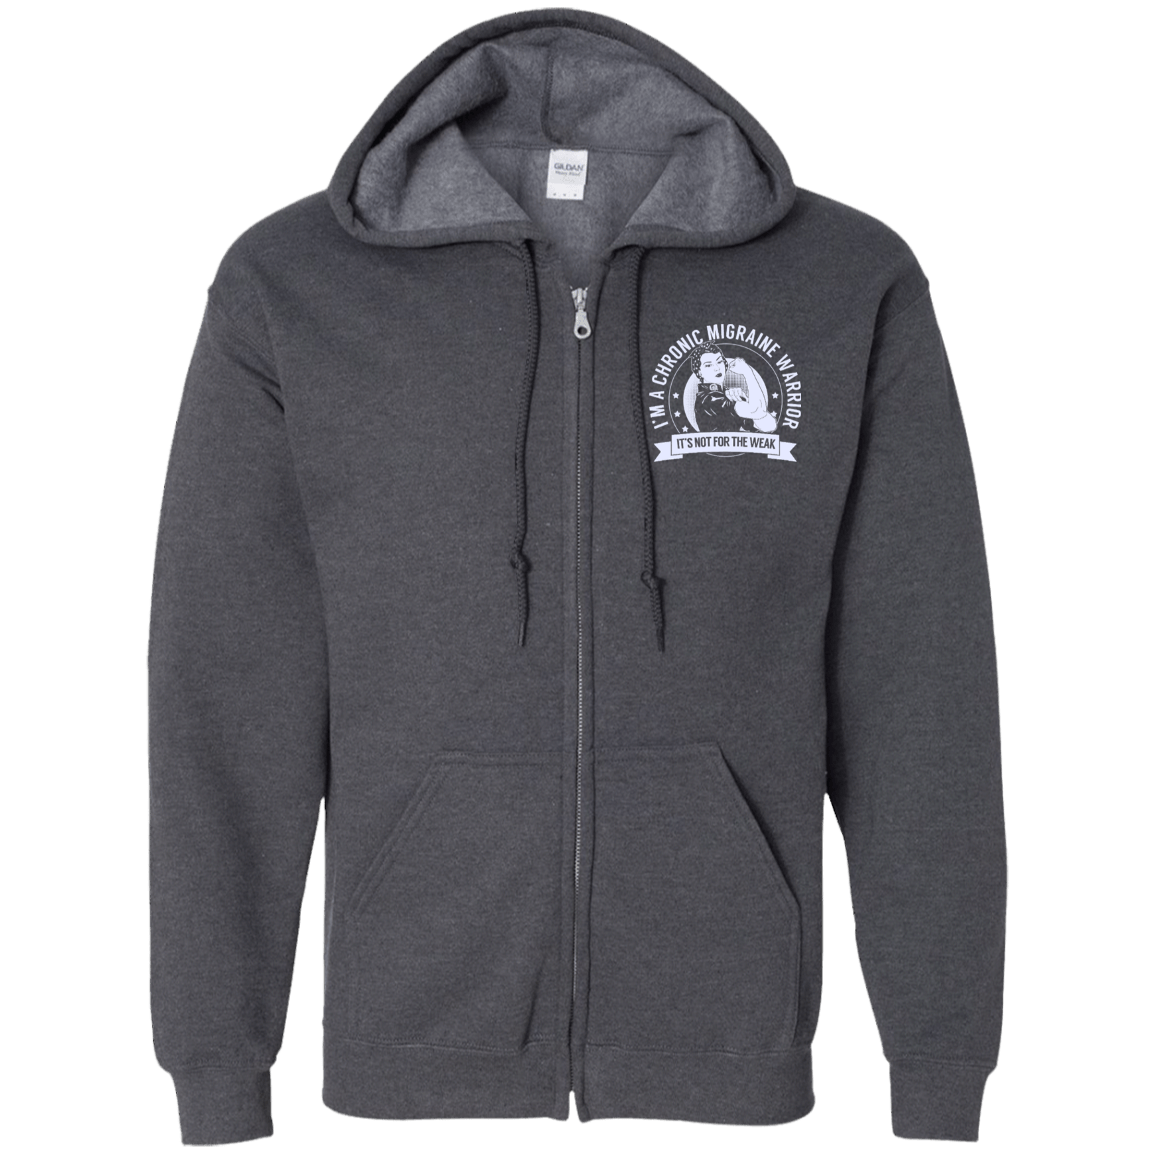 Sweatshirts - Chronic Migraine Warrior NFTW Zip Up Hooded Sweatshirt